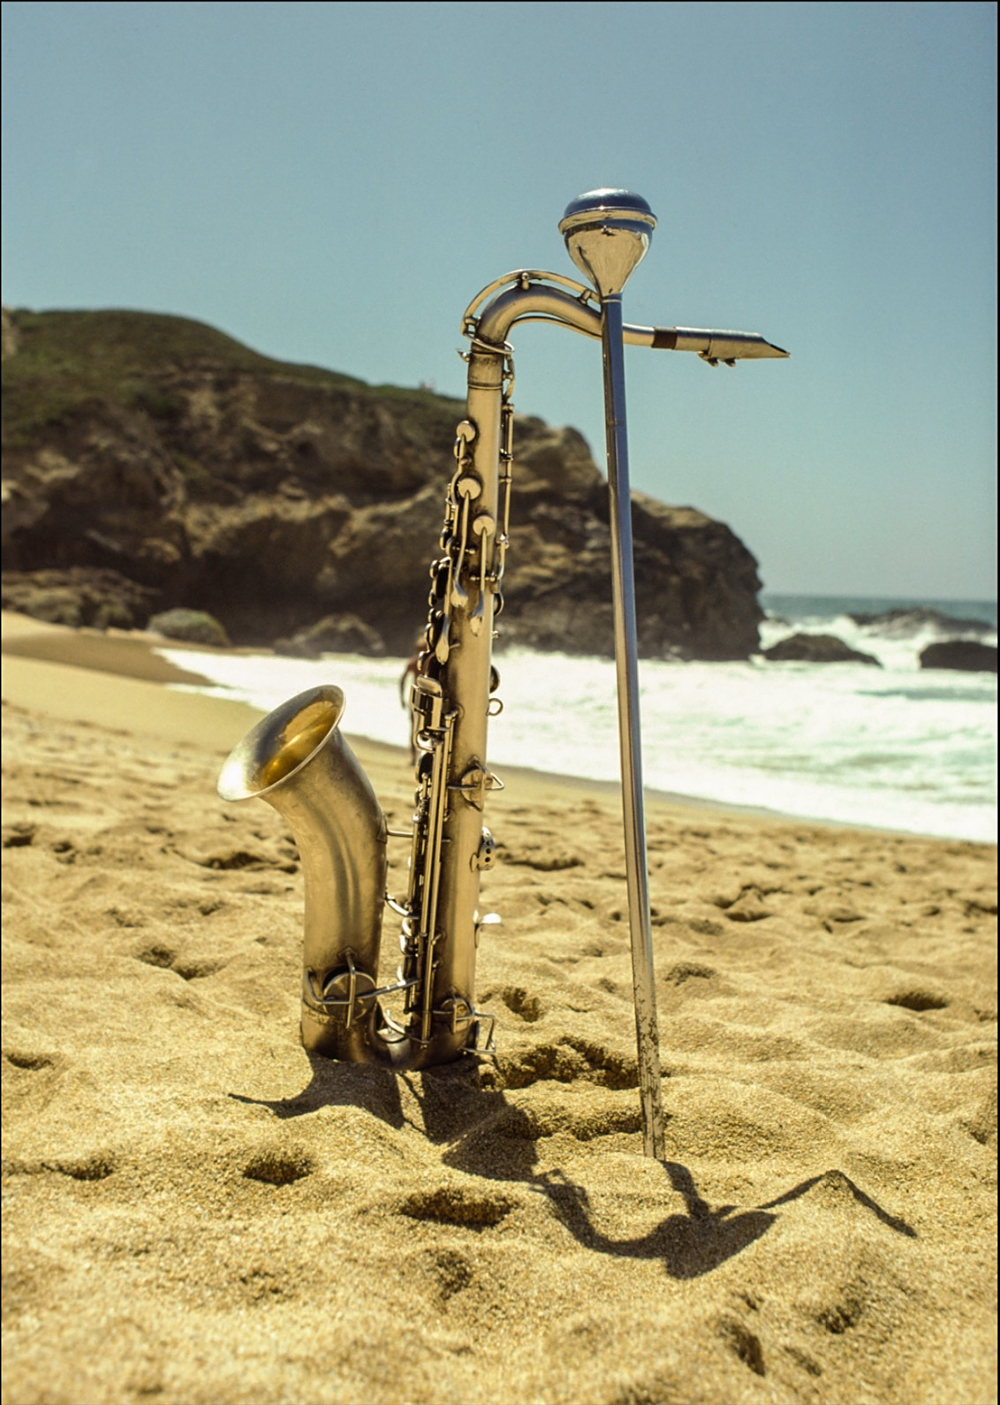 Saxaphone standing up in the sand